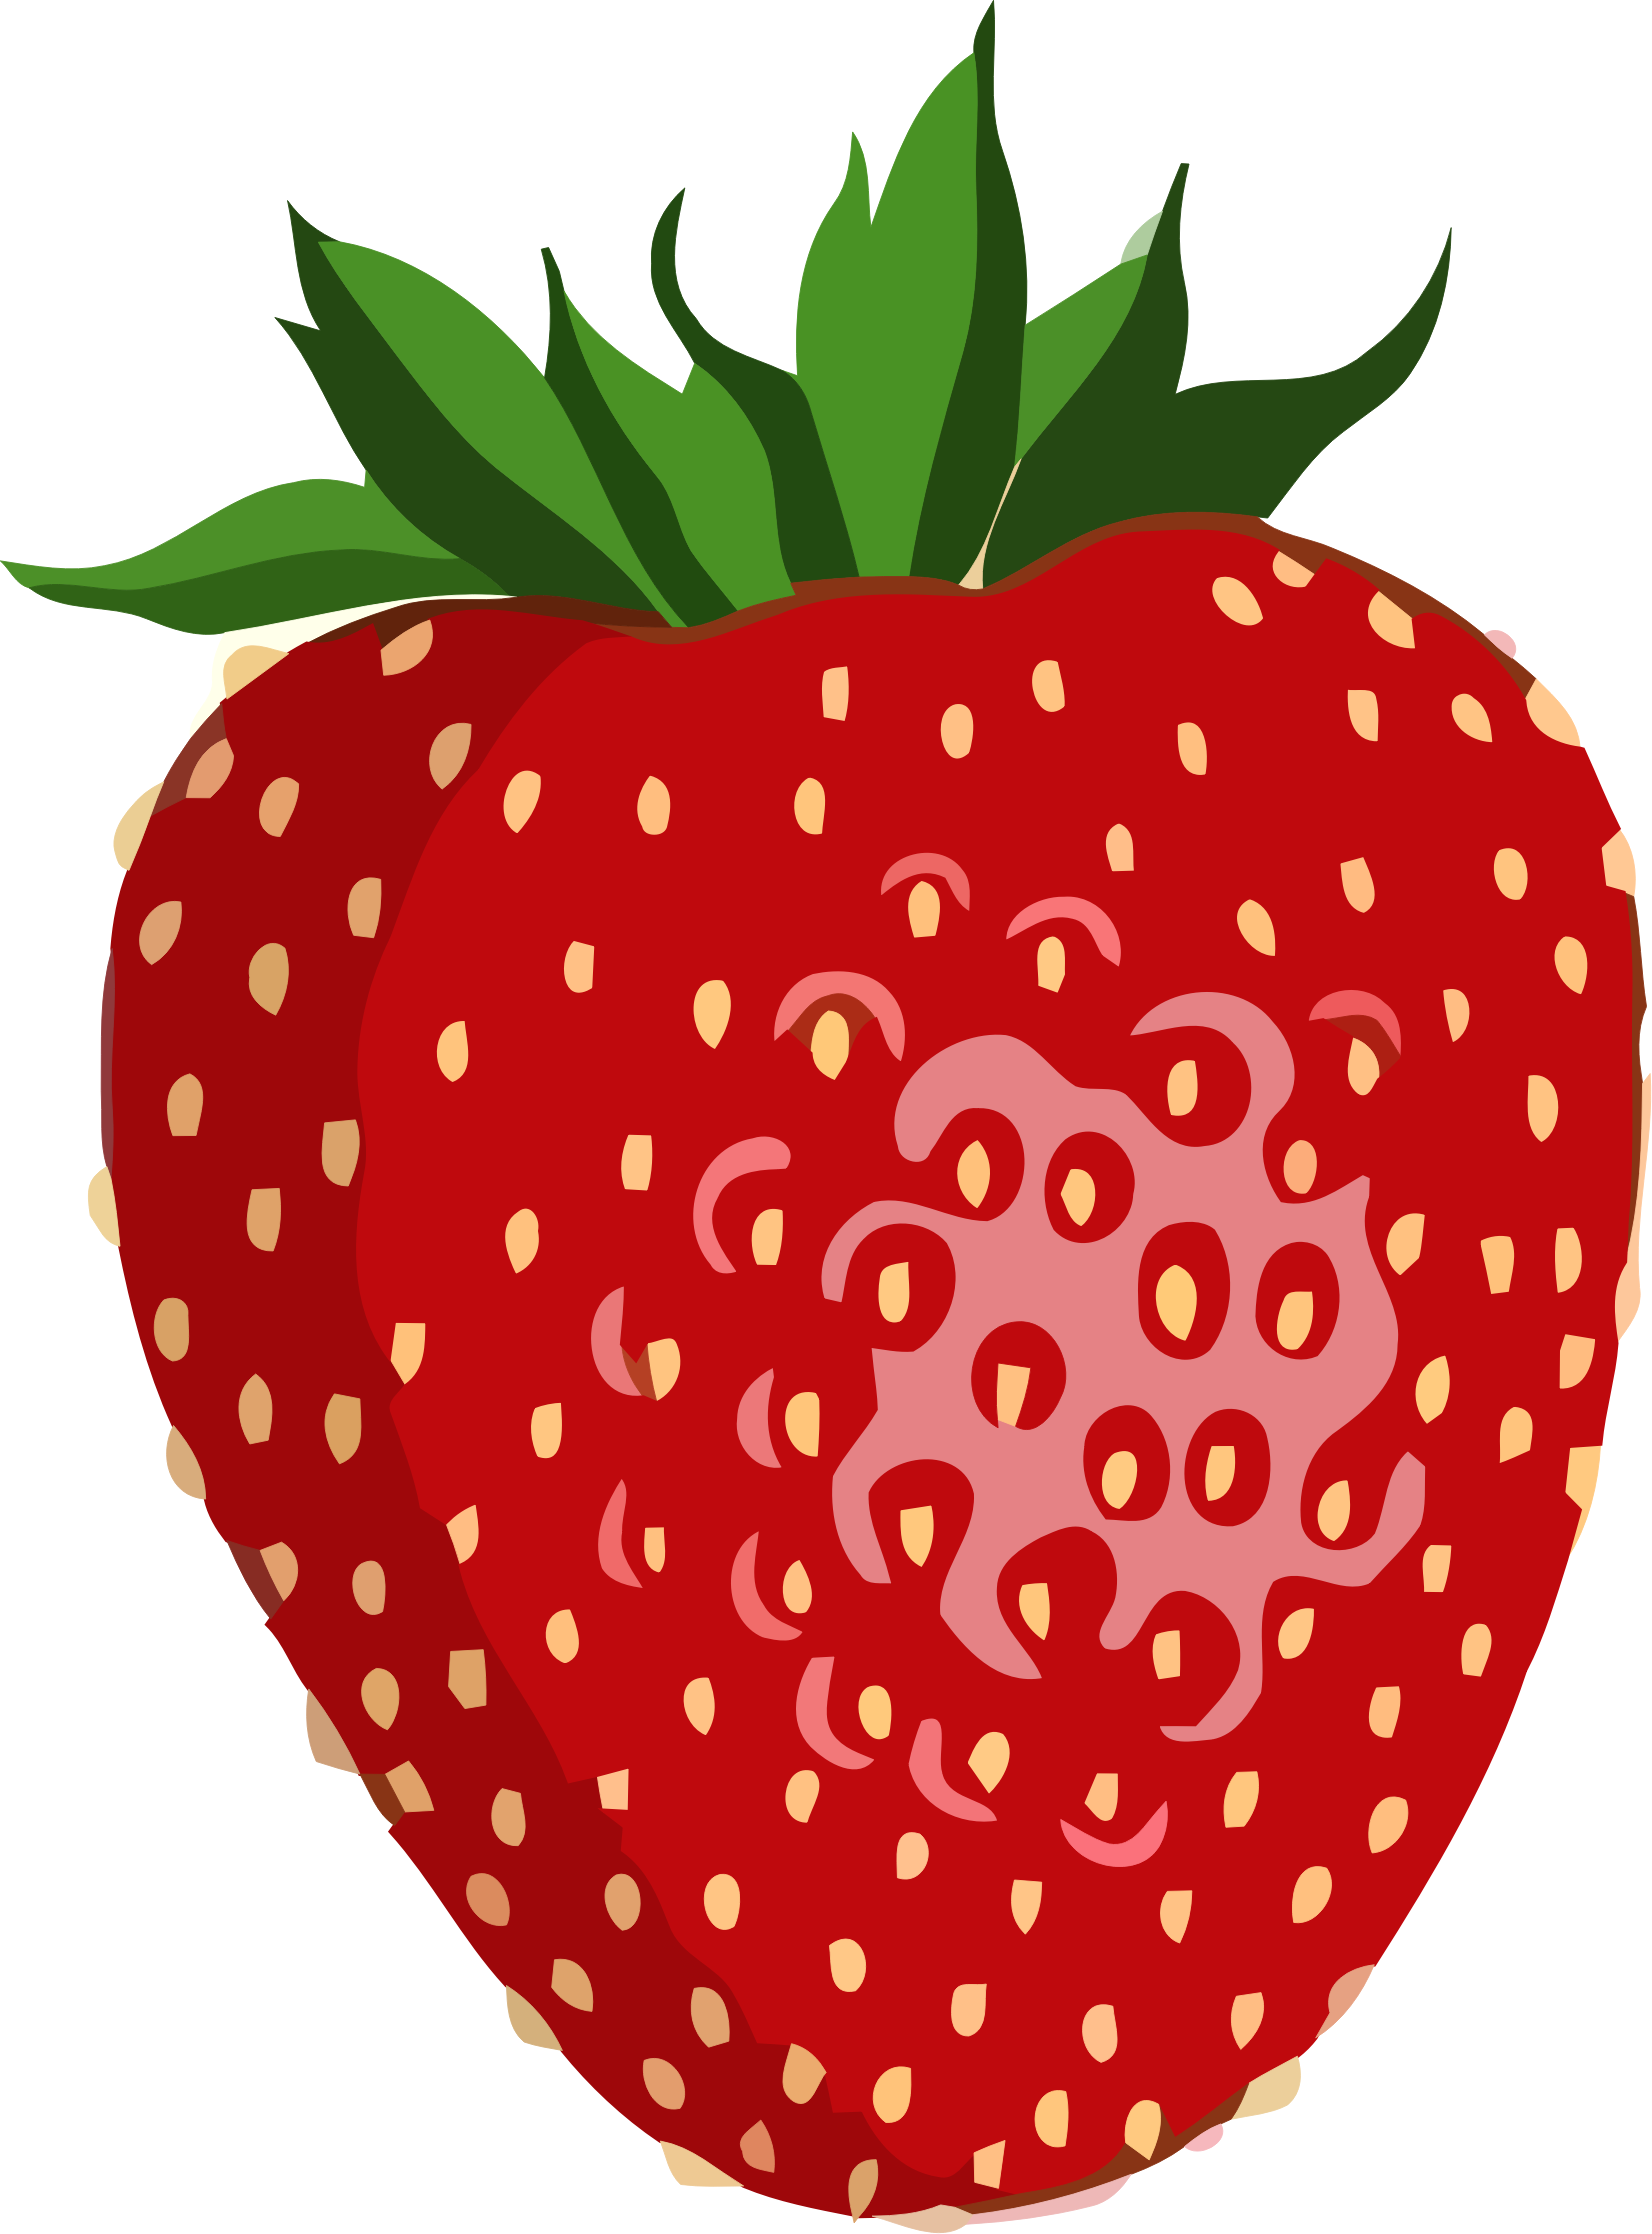 Shiny Strawberry by GDJ Полуниця